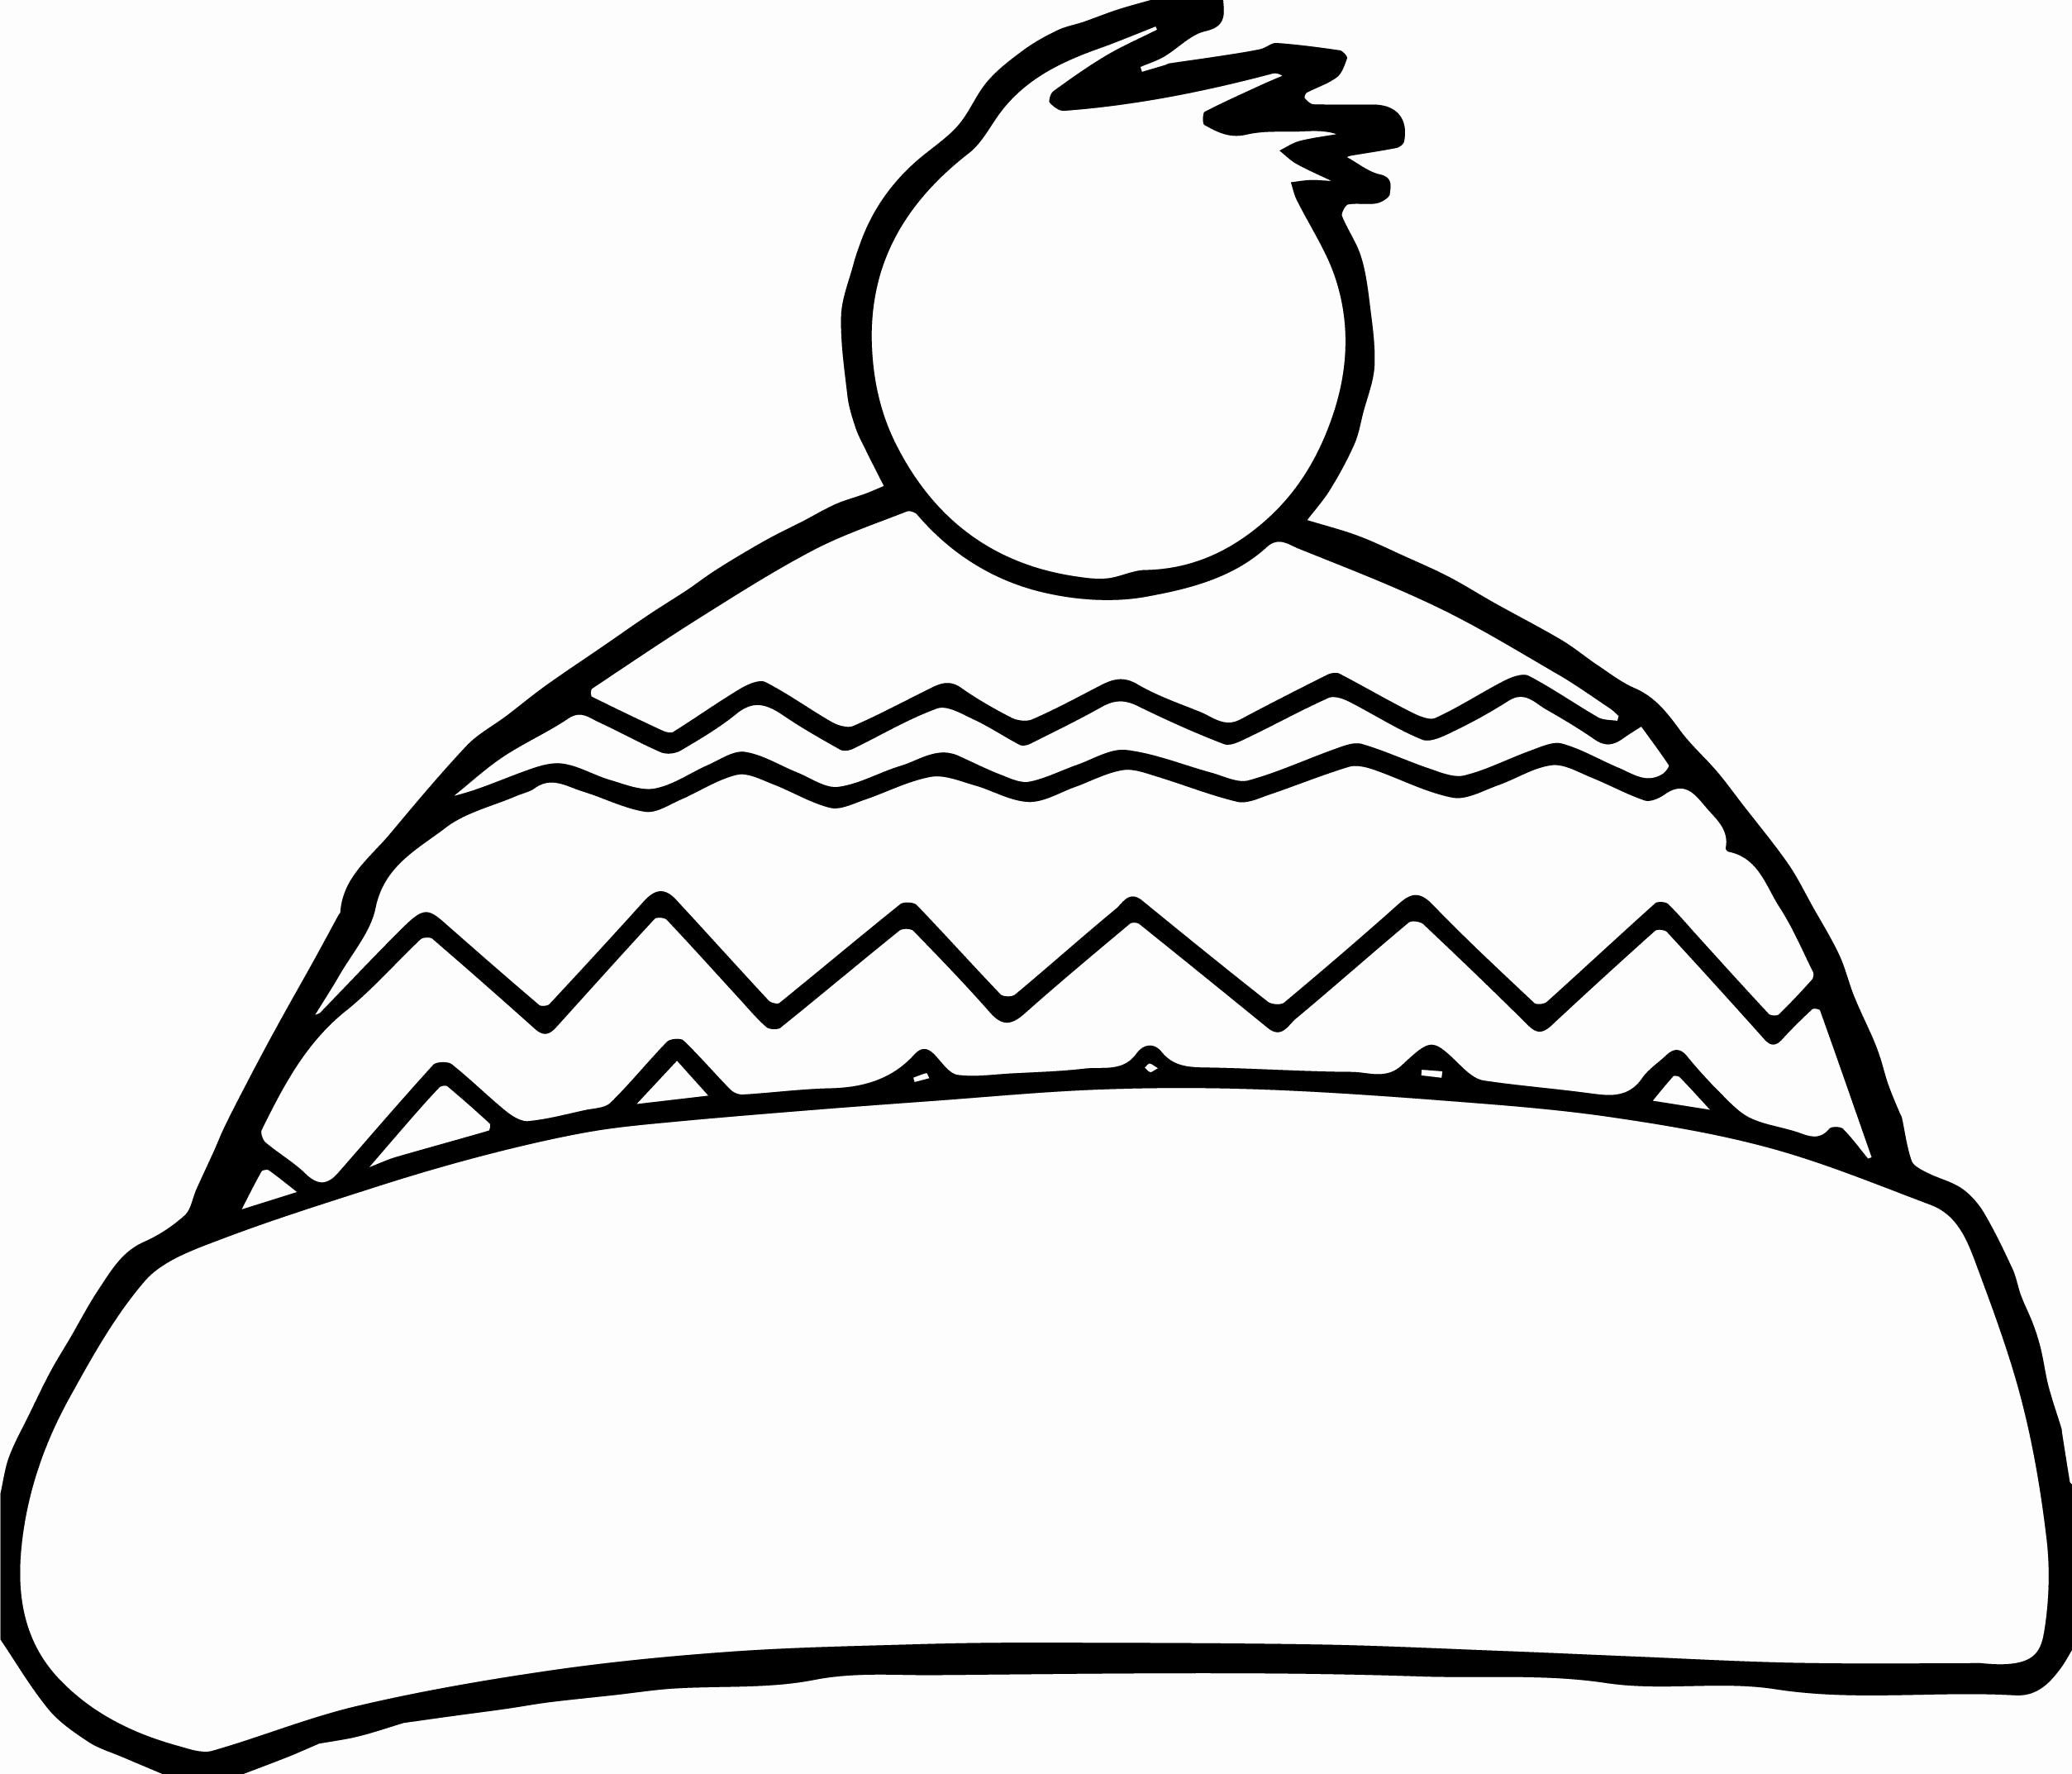 Winter Hat Coloring Page Lovely Winter Snow Hat Coloring Page Coloring Pages Winter Valentines Day Coloring Page Cat Coloring Page